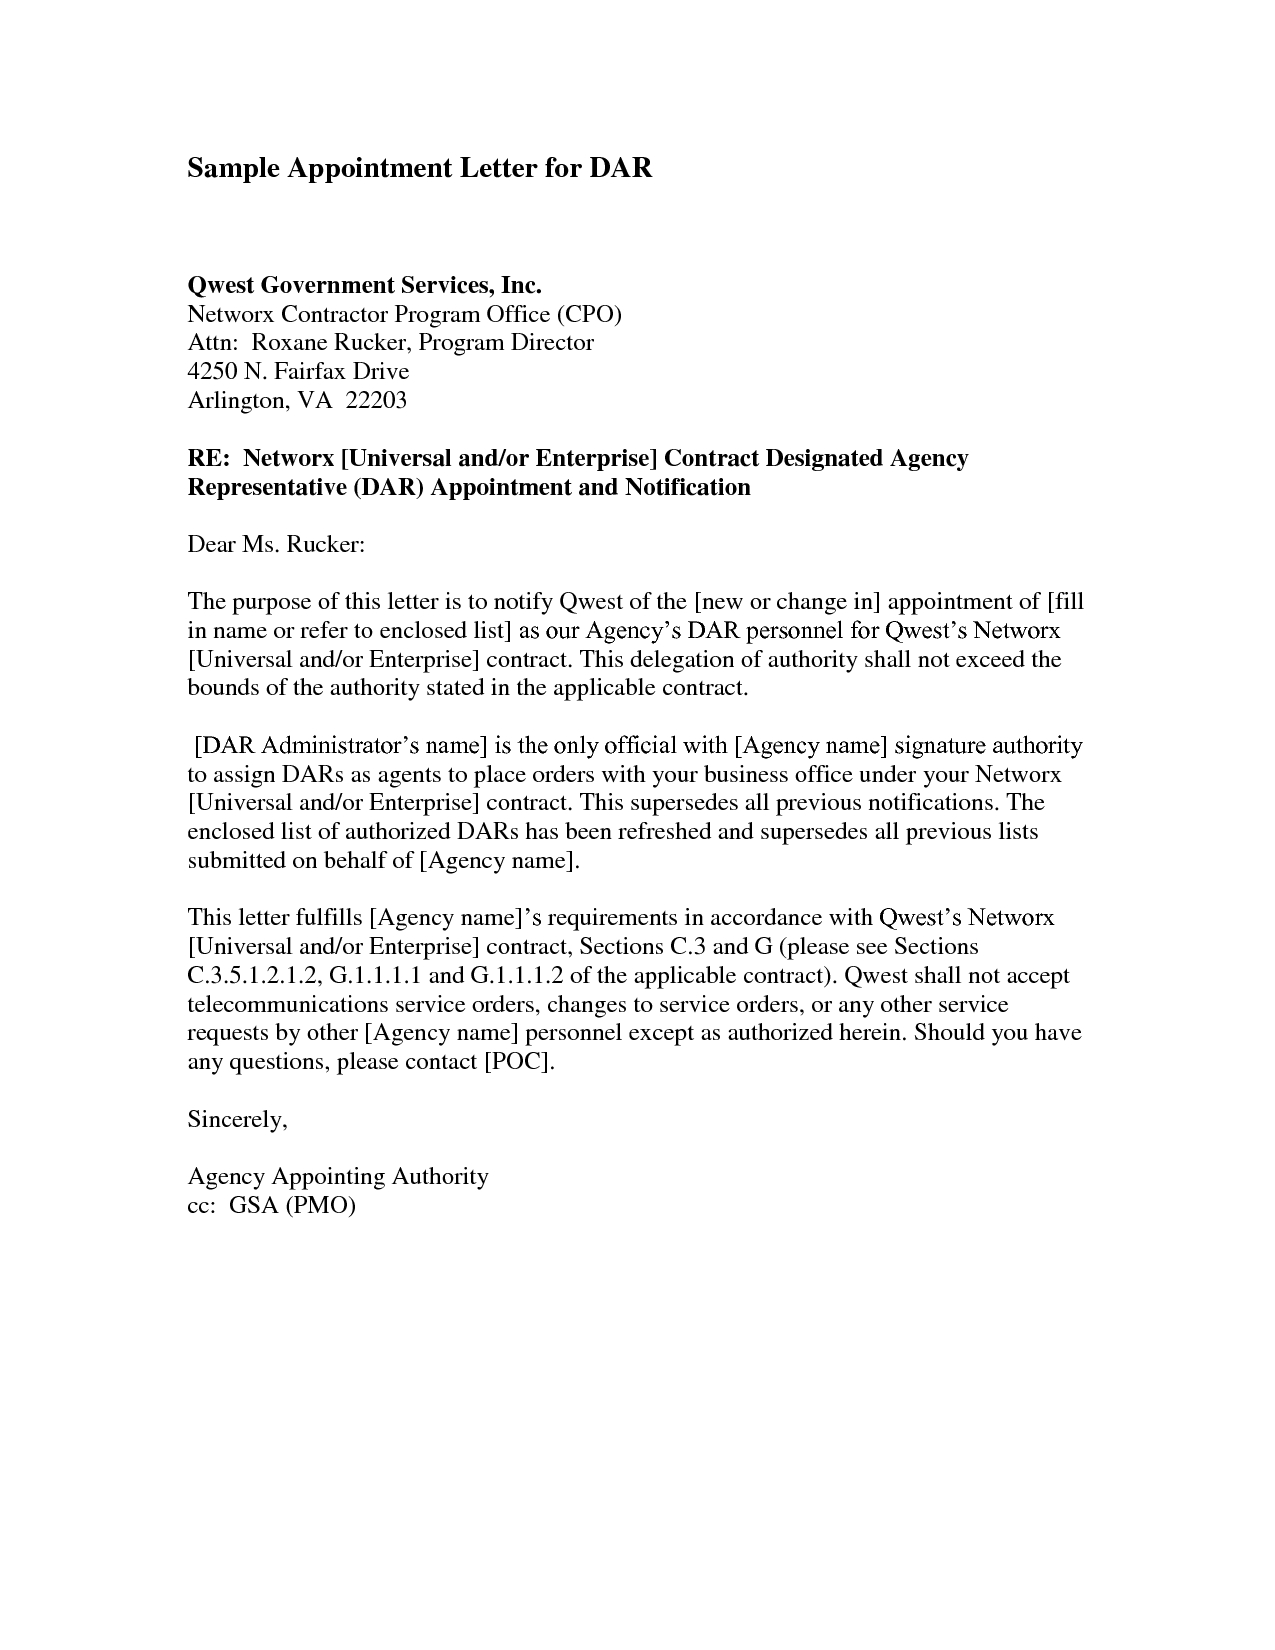 Notice Of Contract Termination Letter Template - Trustee Appointment Letter Director Trustee is Appointed or